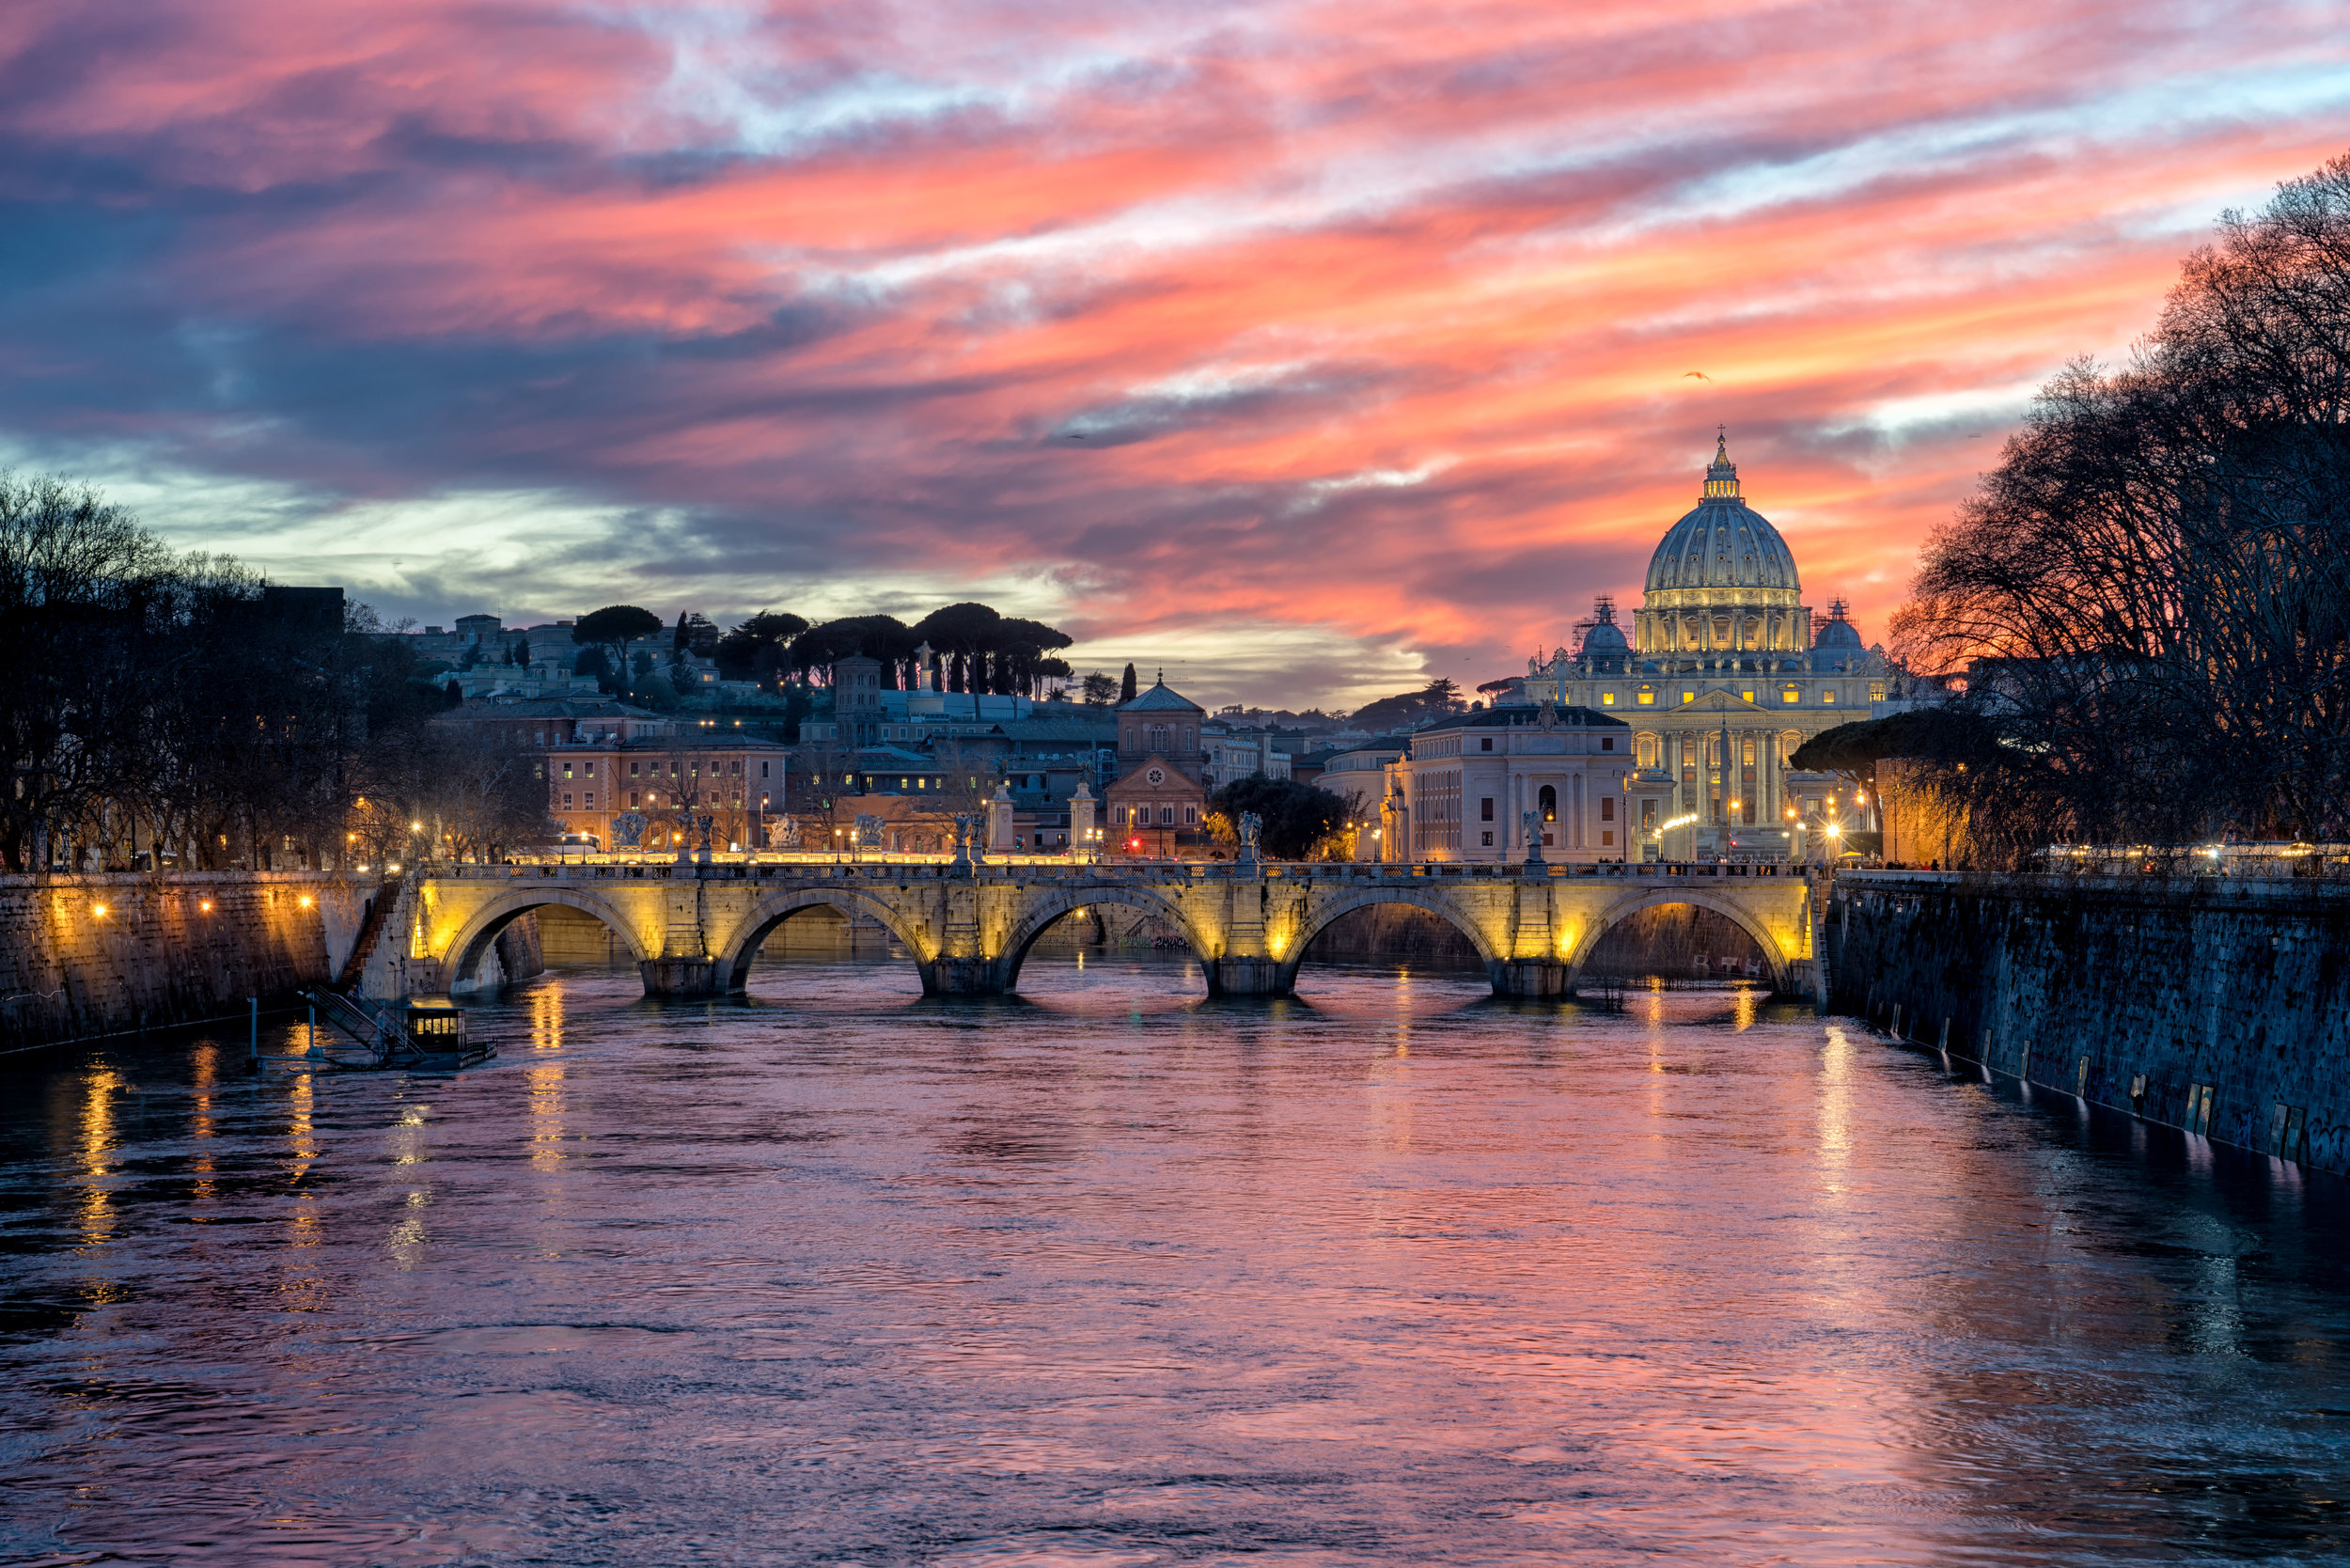 The Vatican at Sunset